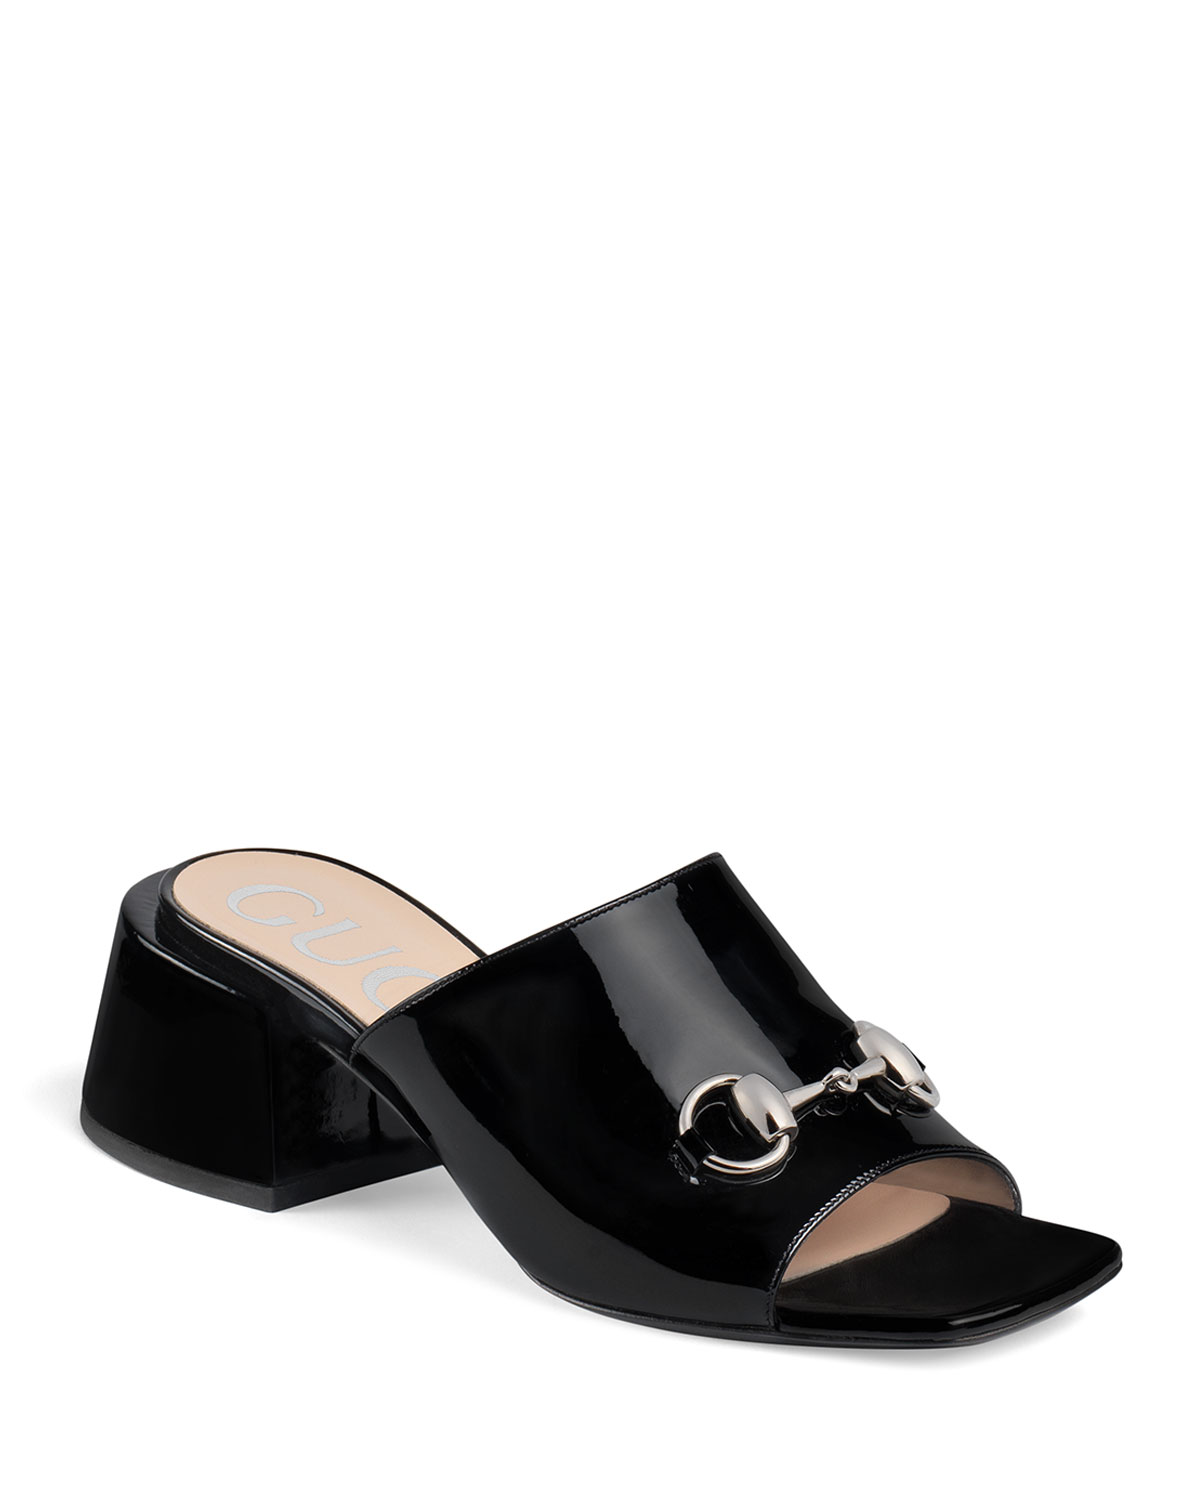 Lexi 55mm Patent Leather Slide